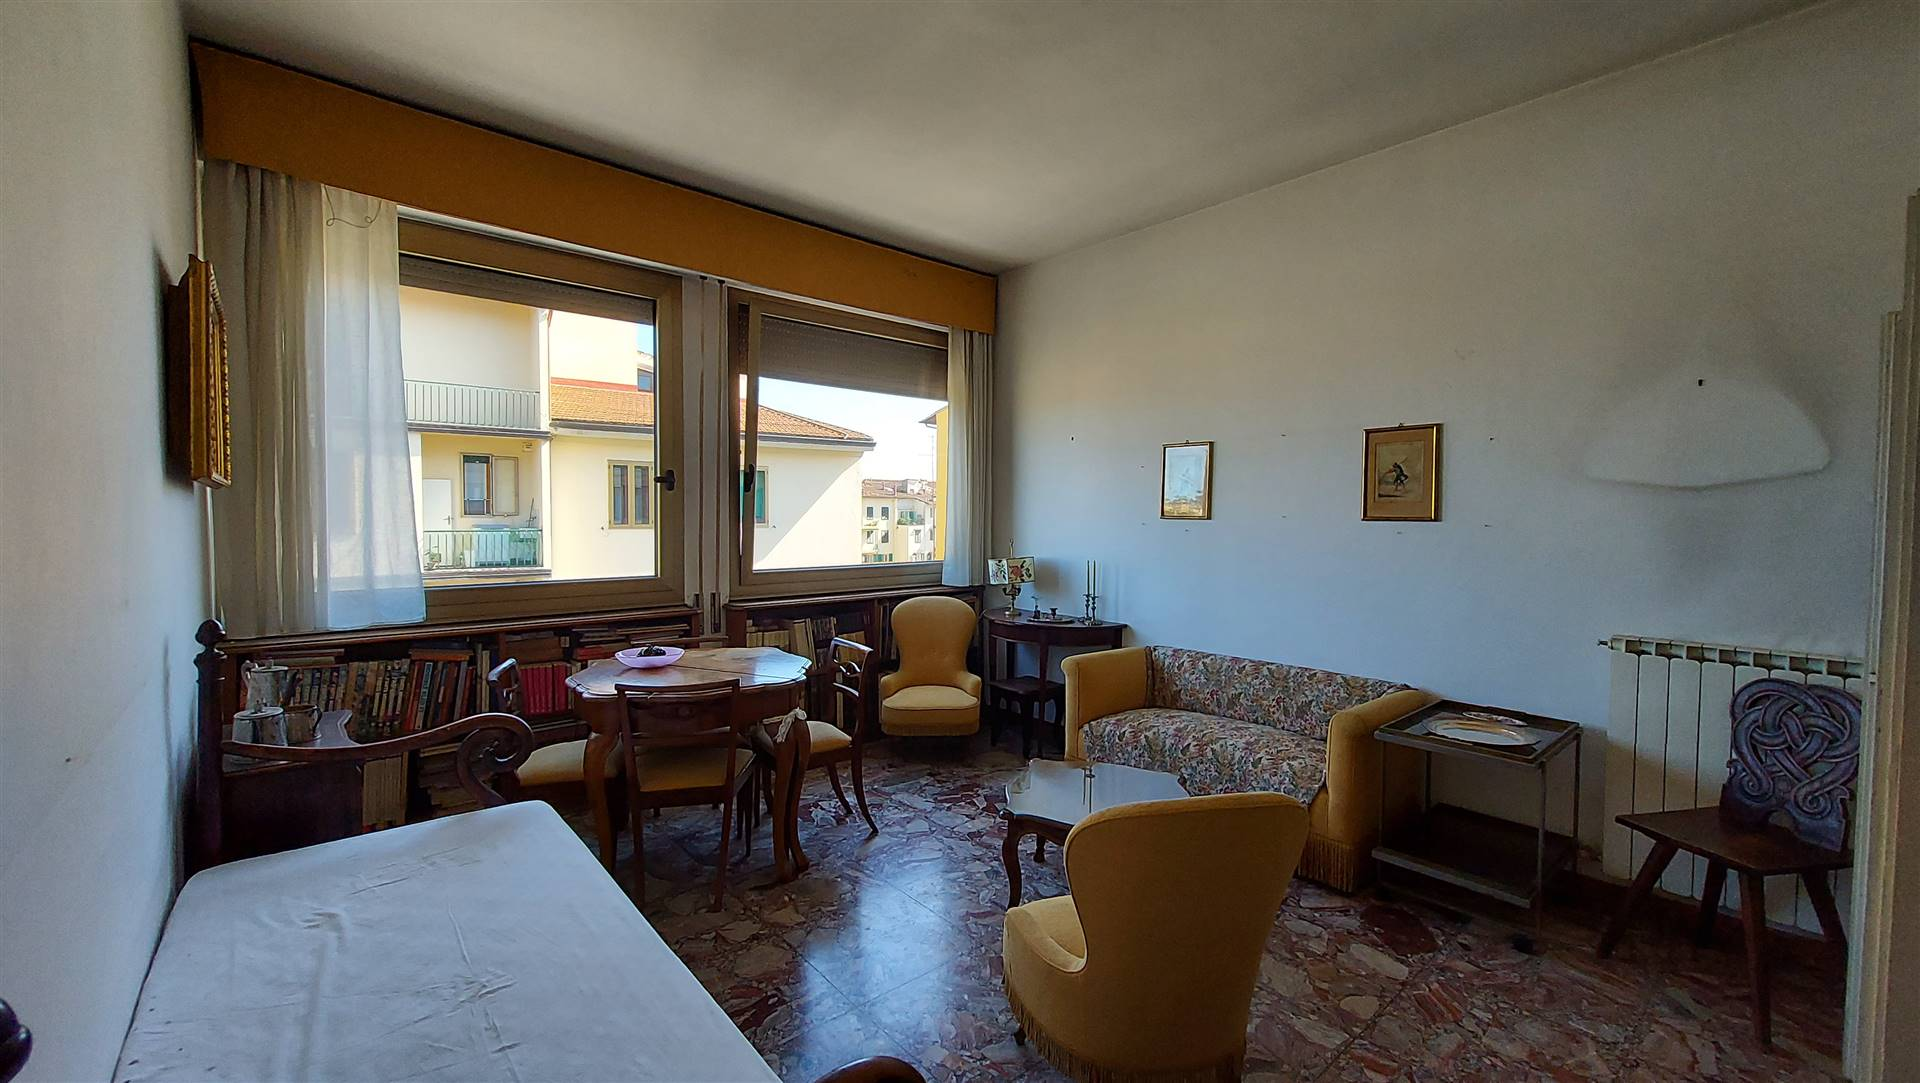 PIAZZA DONATELLO, FIRENZE, Apartment for sale of 100 Sq. mt., Be restored, Heating Individual heating system, Energetic class: F, Epi: 119,65 kwh/m2